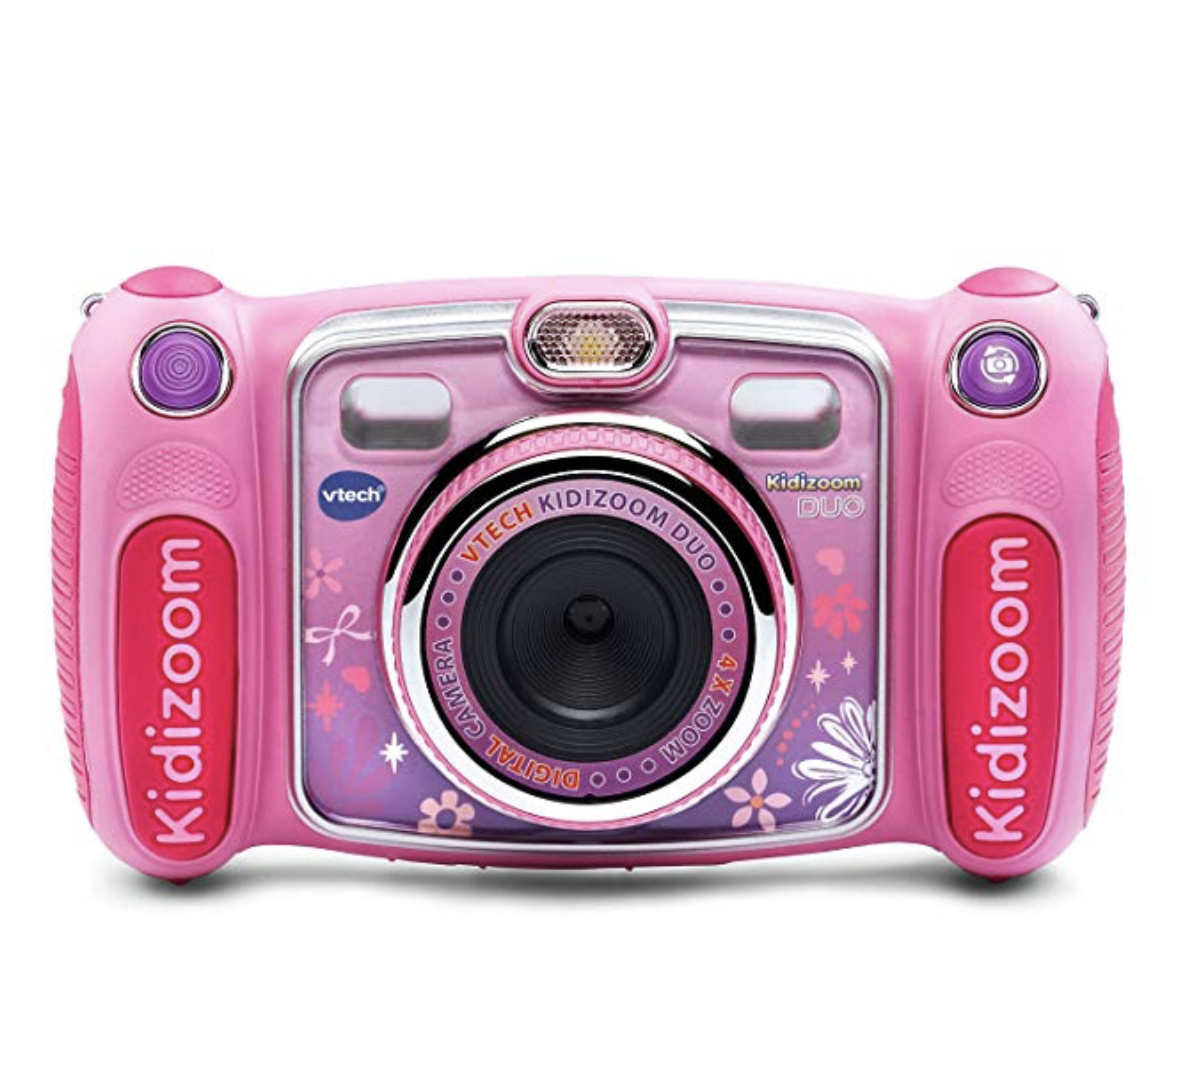 First kid's camera - Our kids are obsessed with this camera. We take it on biking trips, hiking trips. and it keeps them away from my iPhone. Currently on Cyber Monday sale for half price!